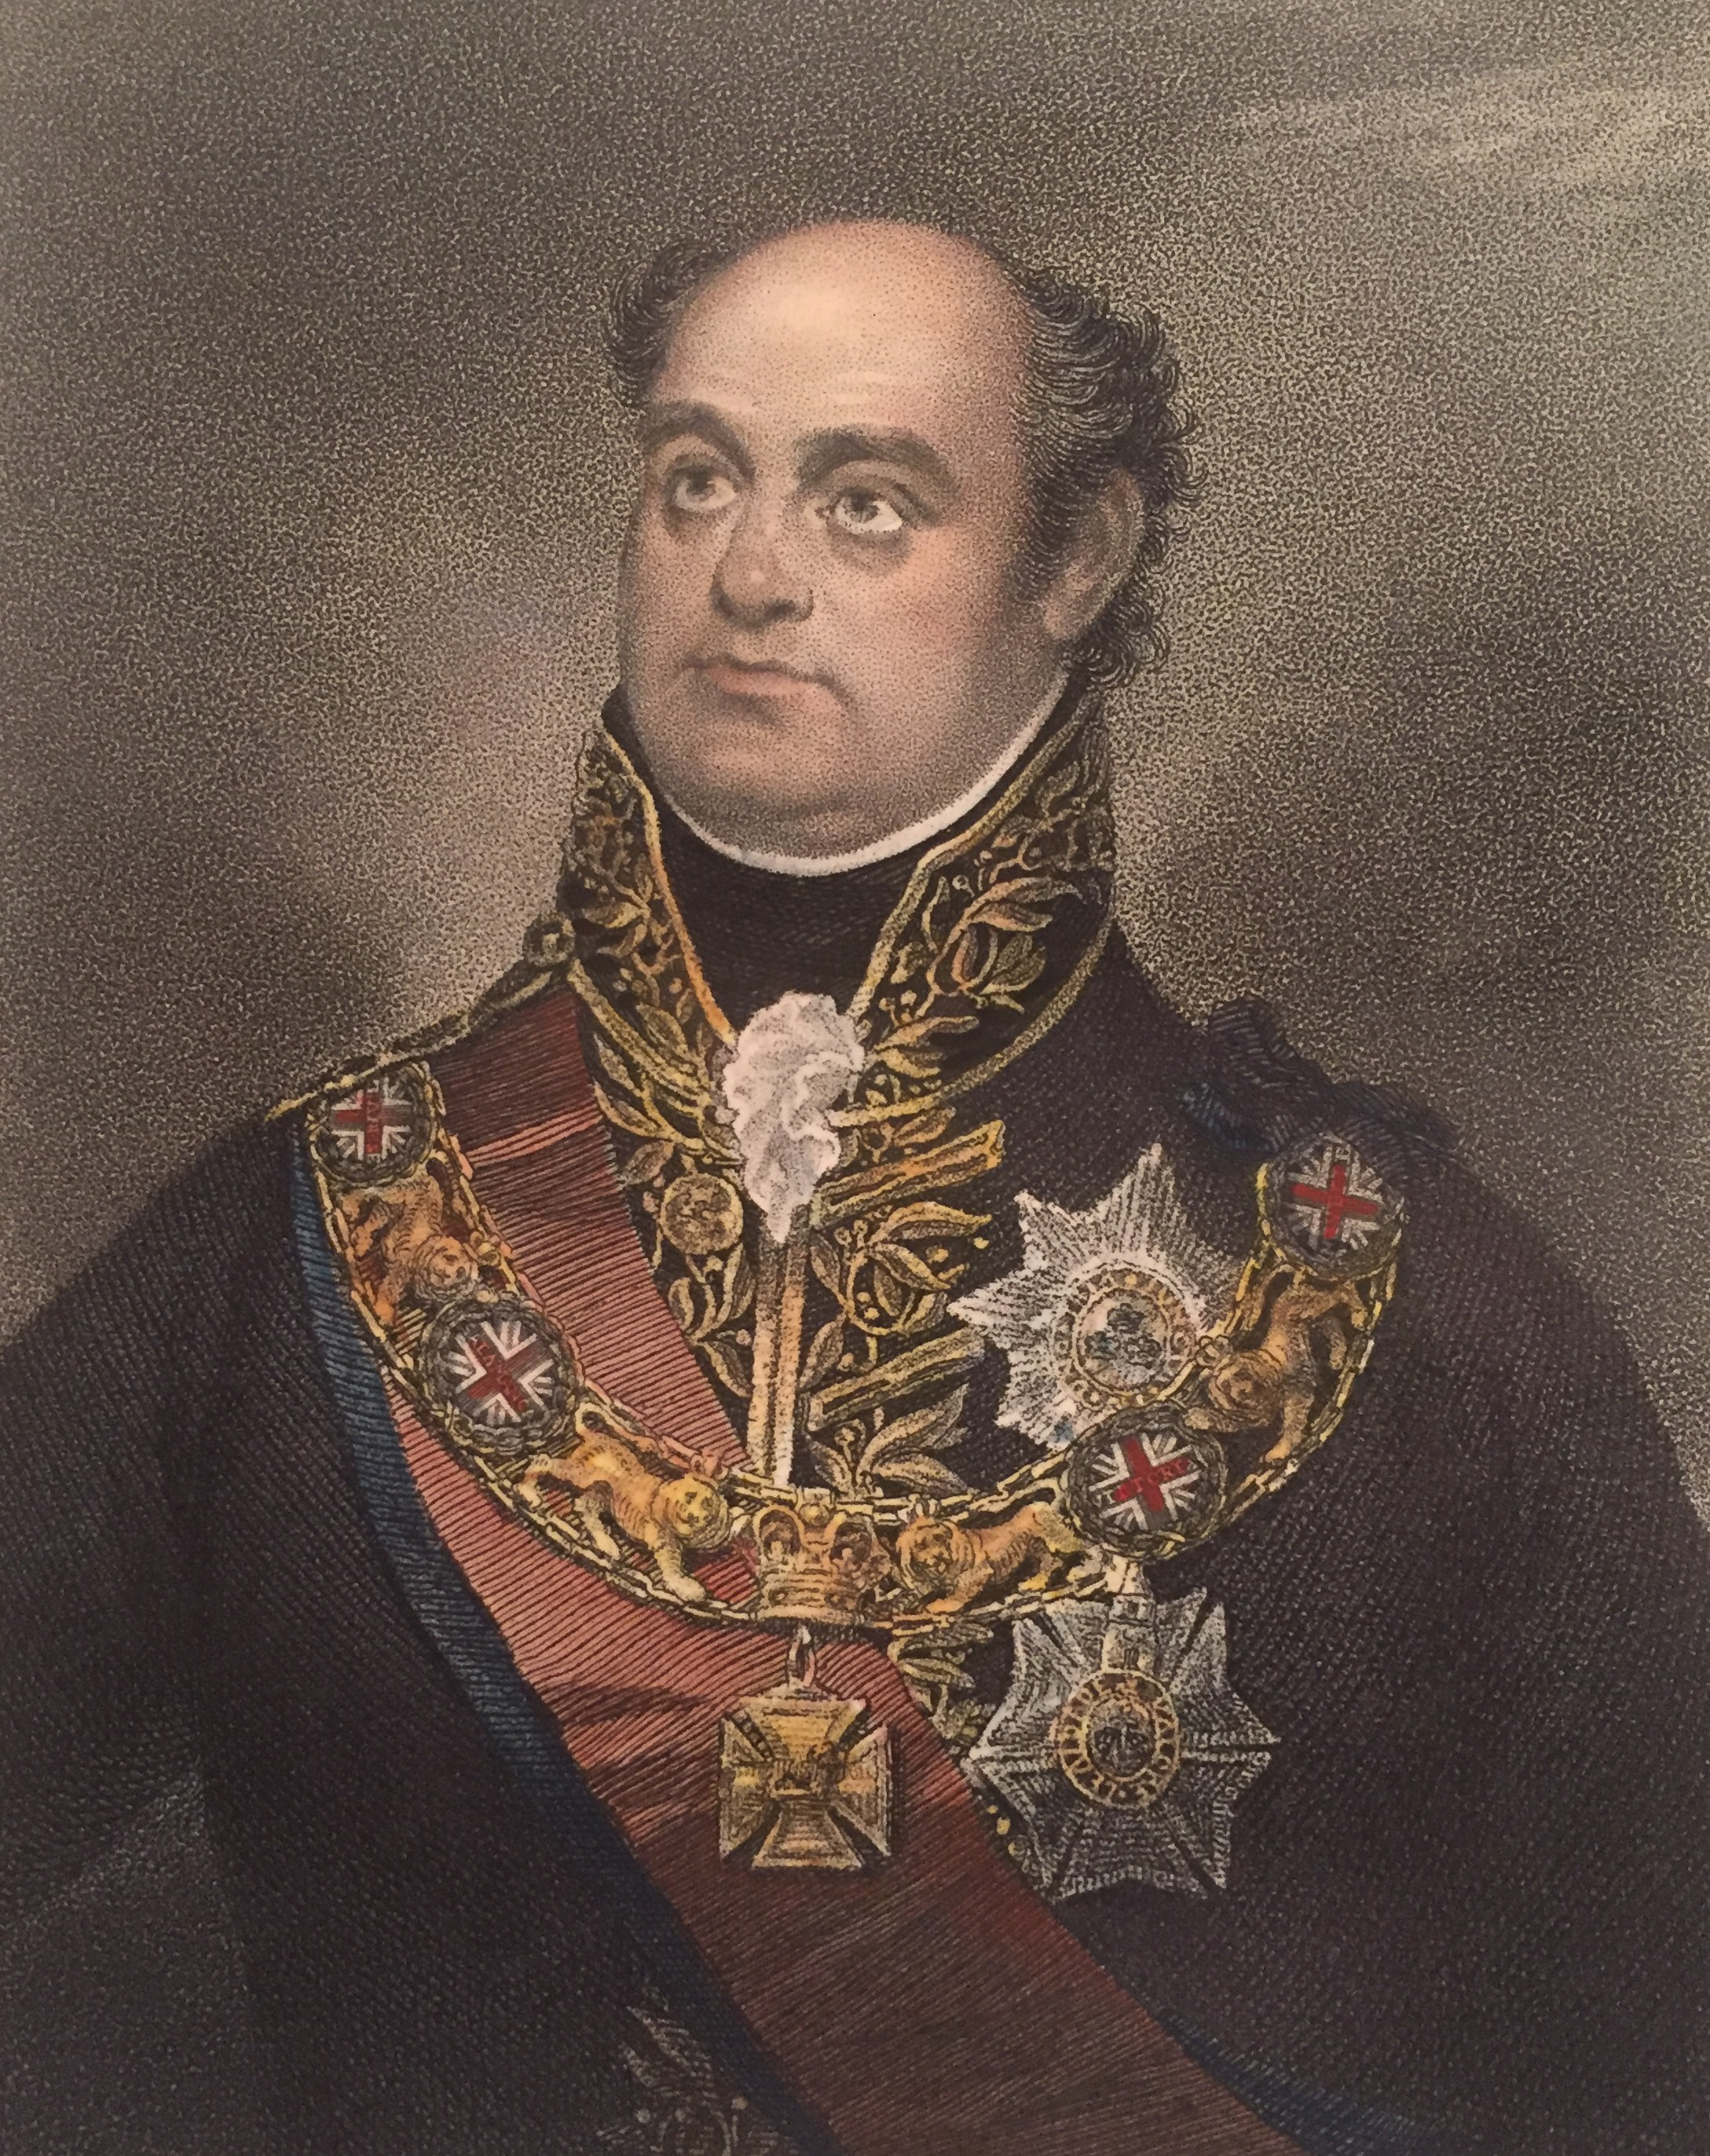 Figure 4 – William Carr Beresford, Viscount Beresford, GCB. Image from author's archive.